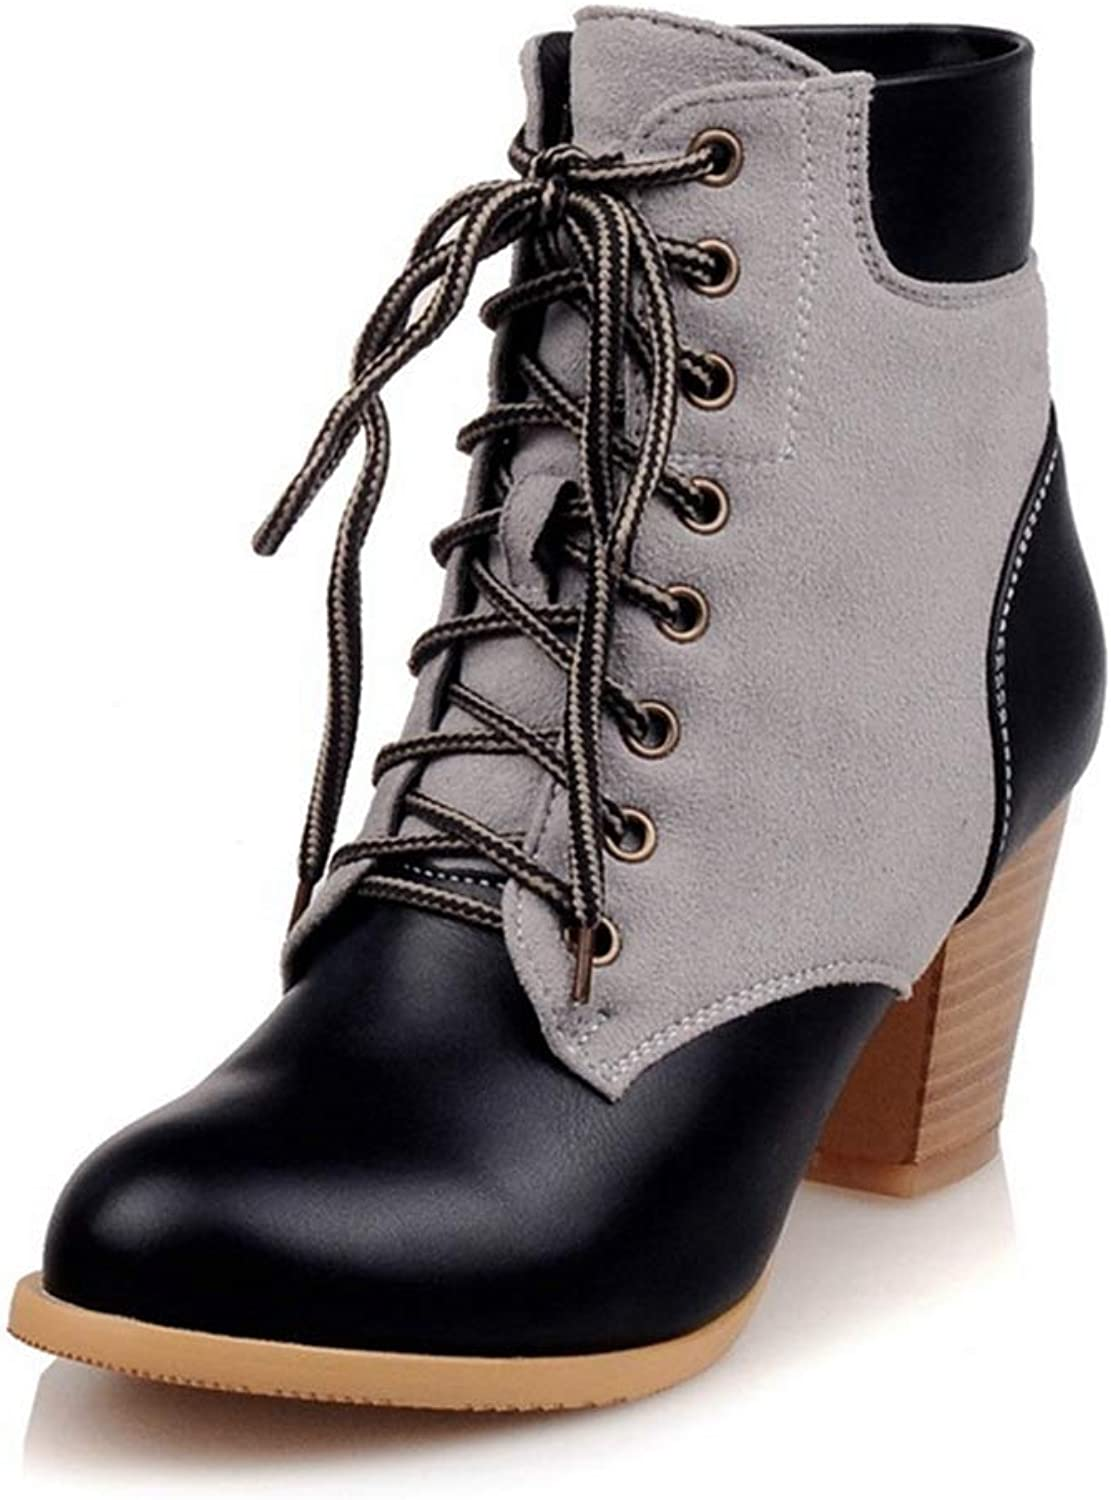 CYBLING Womens Two Tone Combat Boots Lace Up Chunky Heel Martin Ankle Booties